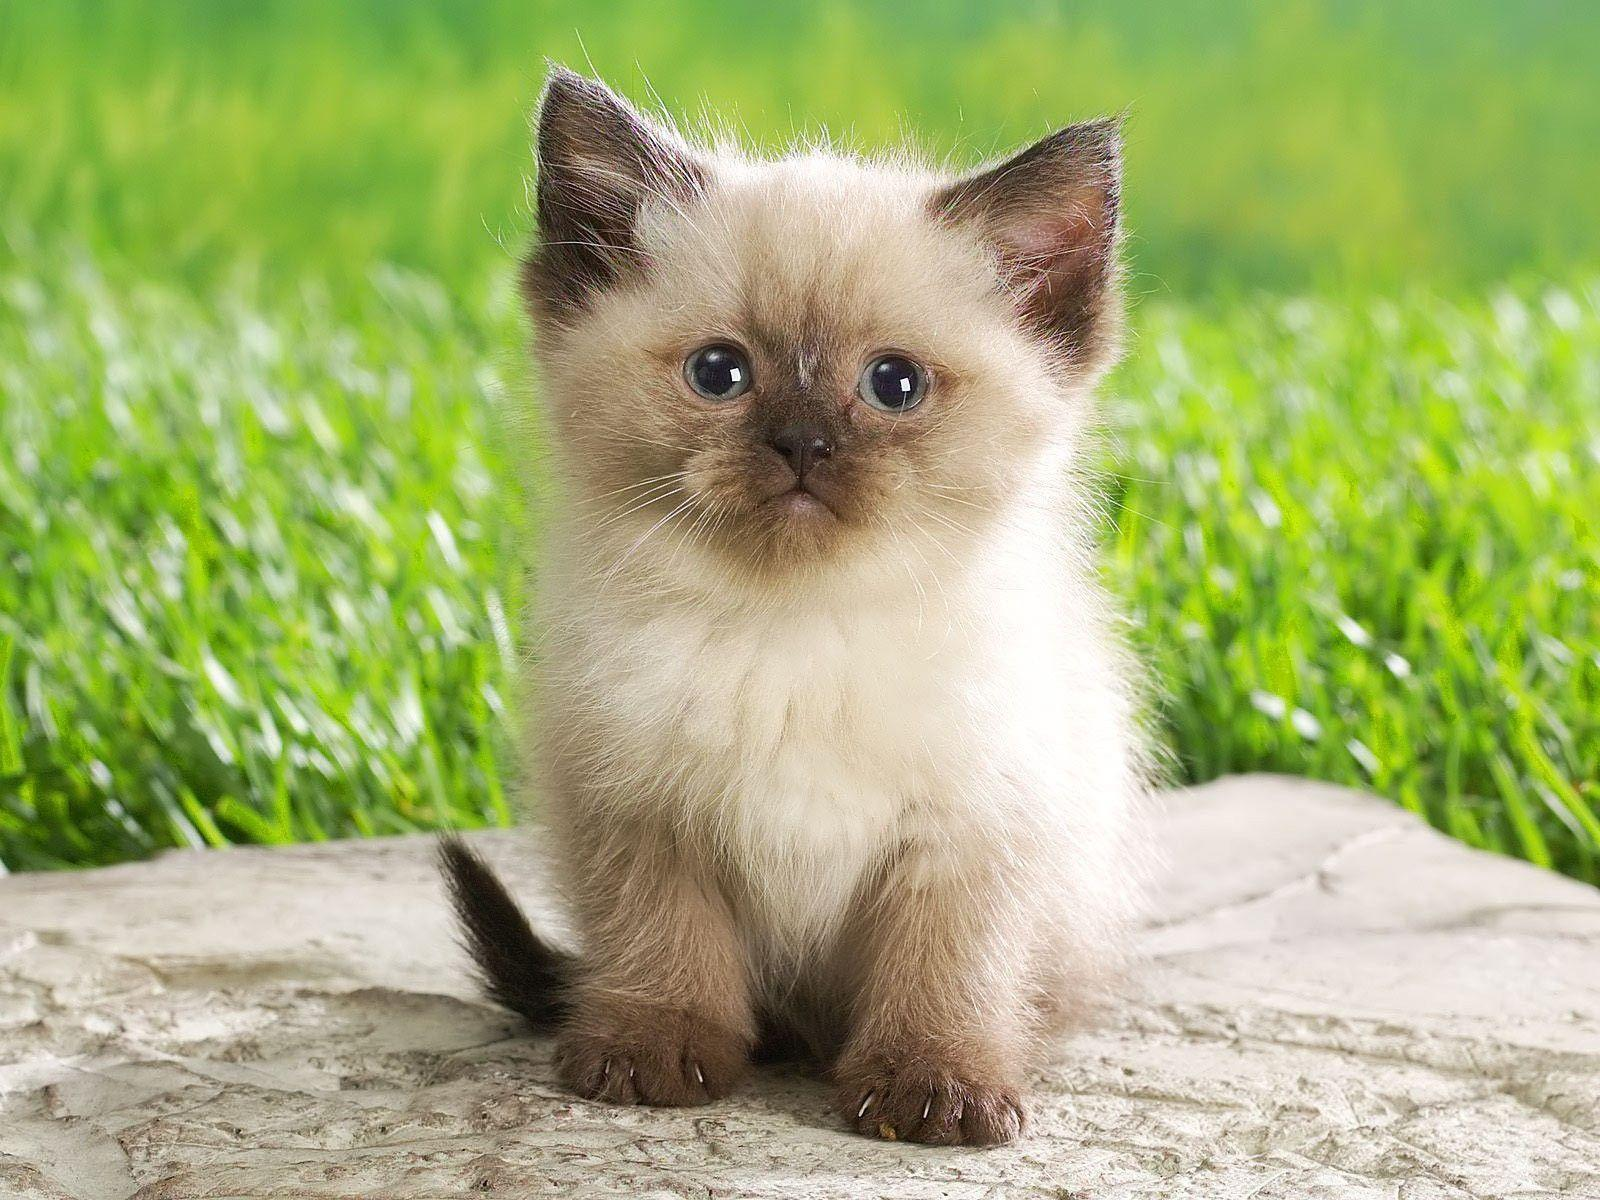 Cute Baby Animals Ever Wallpapers - Top